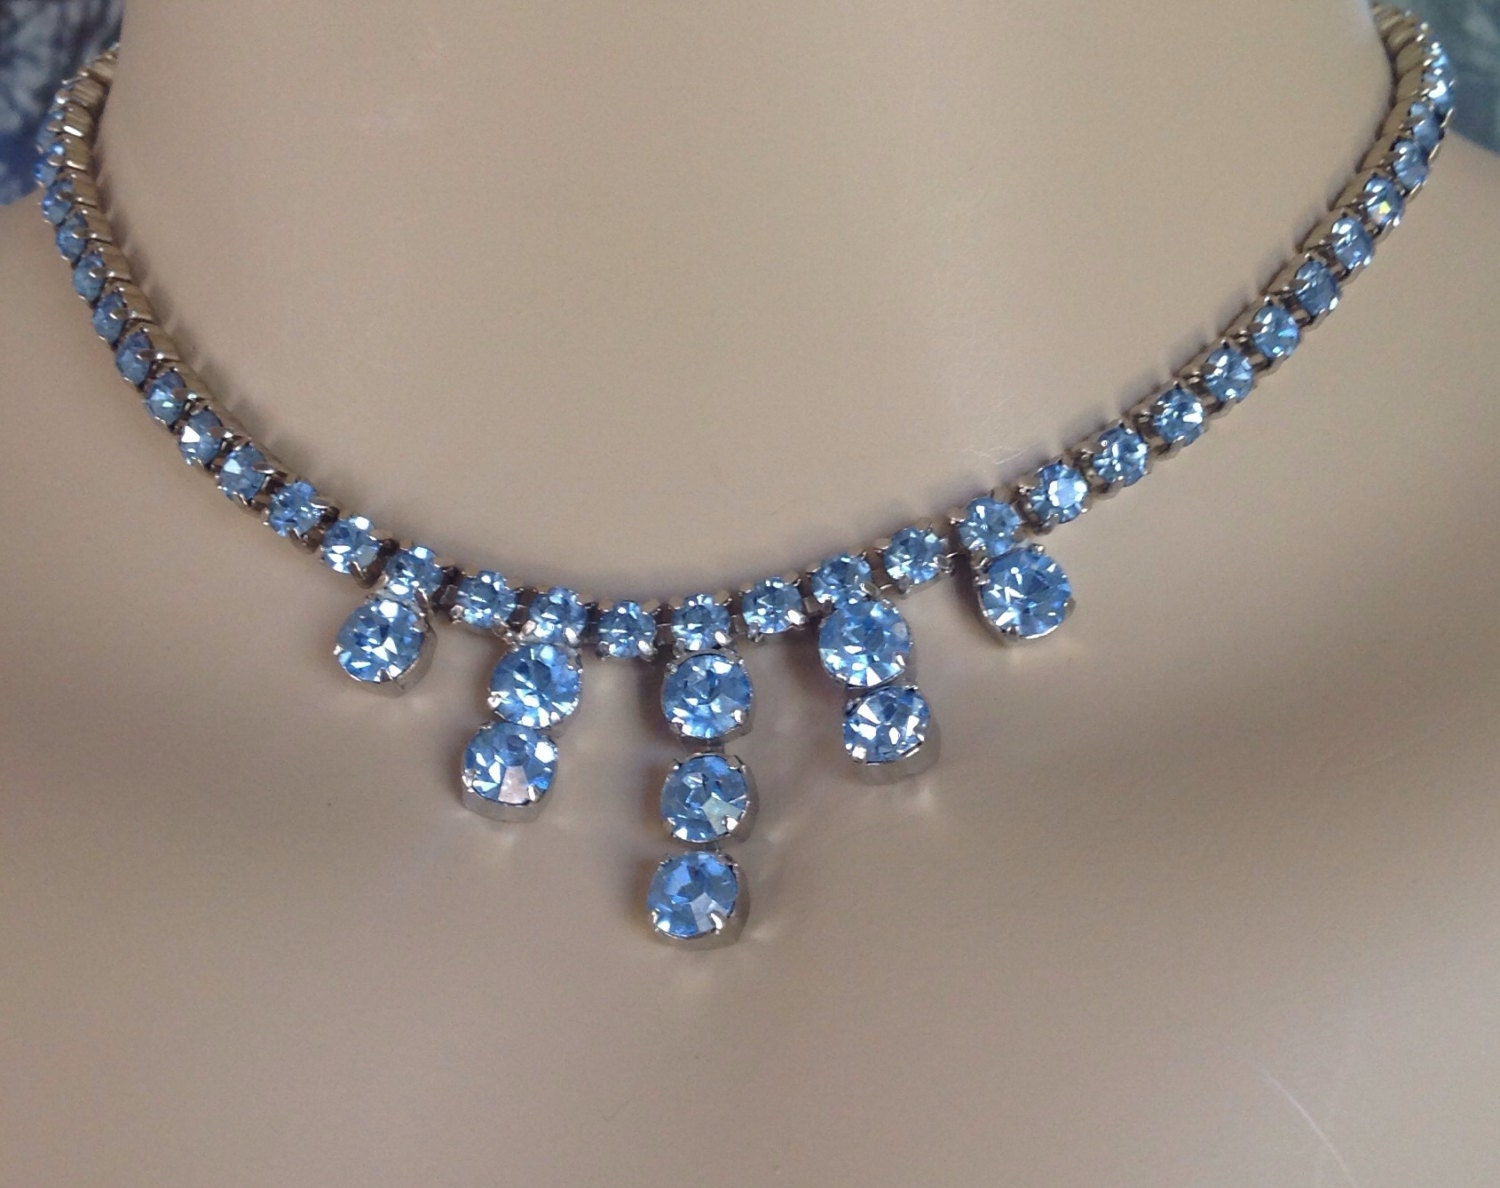 Vintage Rhinestone Jewelry. Related Categories. Auction Alerts. Imitation gems have been substituted for their costly brethren in necklaces, bracelets, and other types of jewelry since the late 18th century, when Georg Friedrich Strass first mimicked diamonds by coating glass with metal powder. Made of rock crystal, acrylic, and leaded glass.